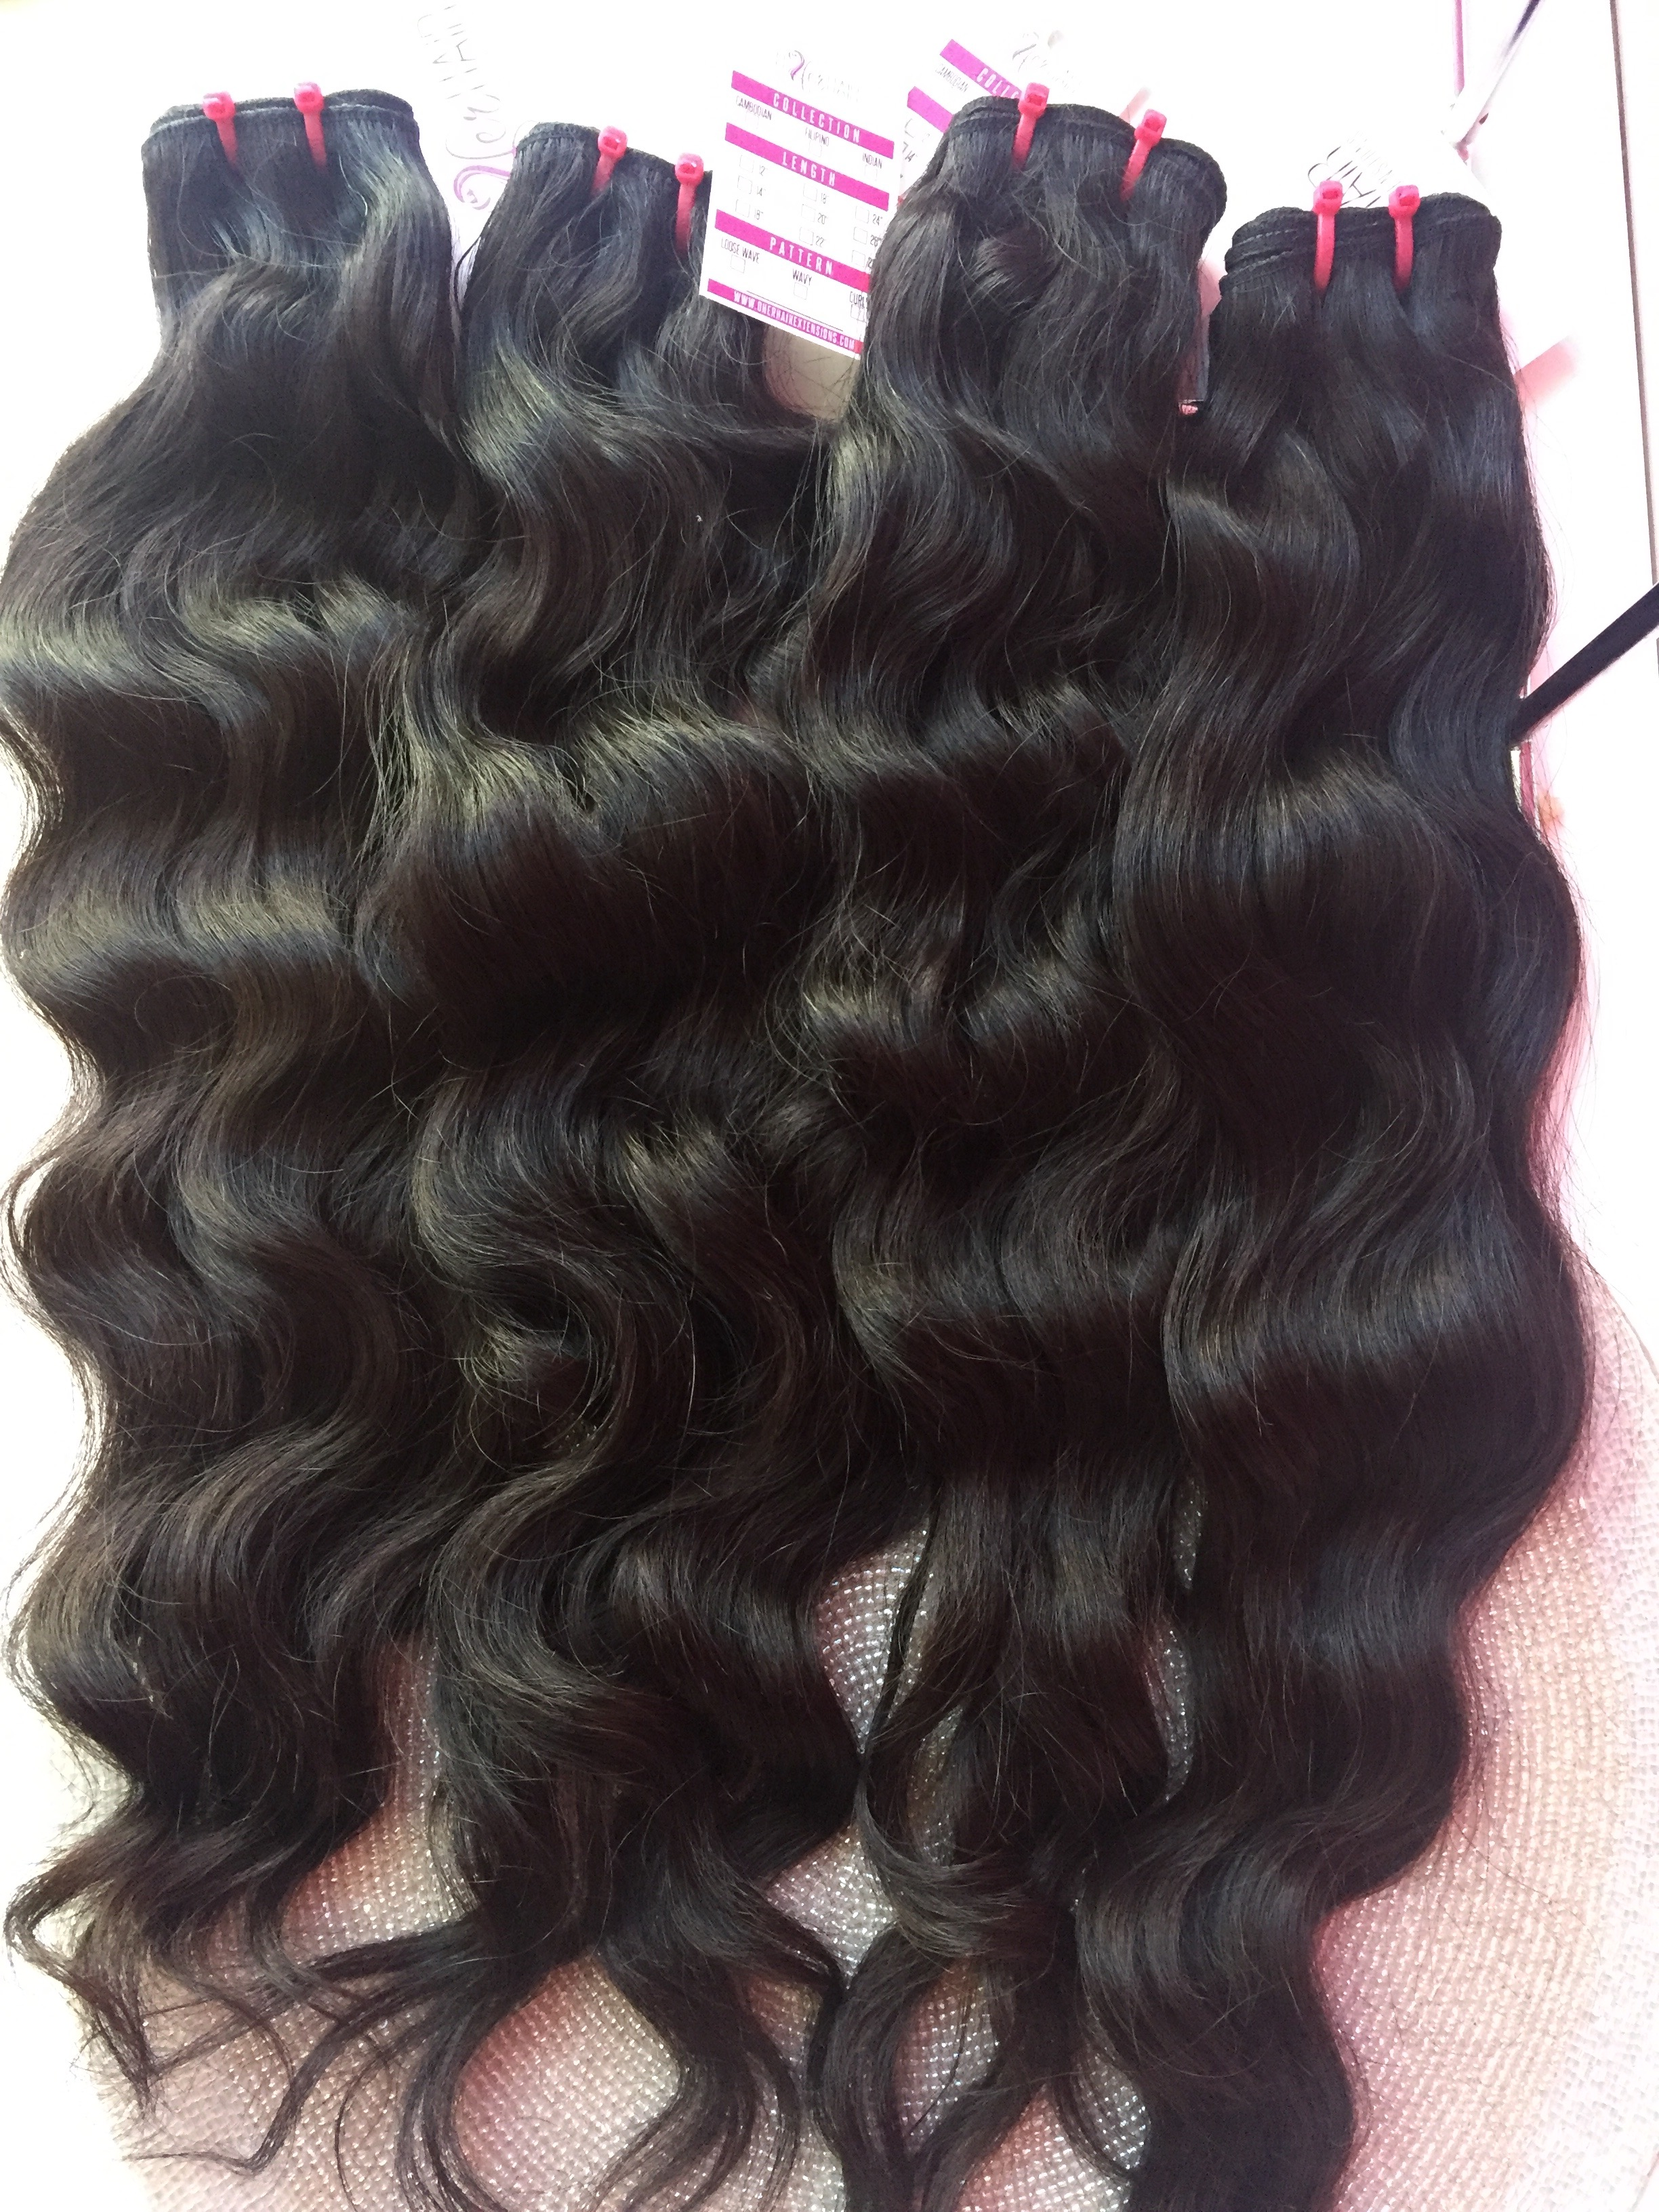 Filipino Rare Collection O Her Hair Extensions